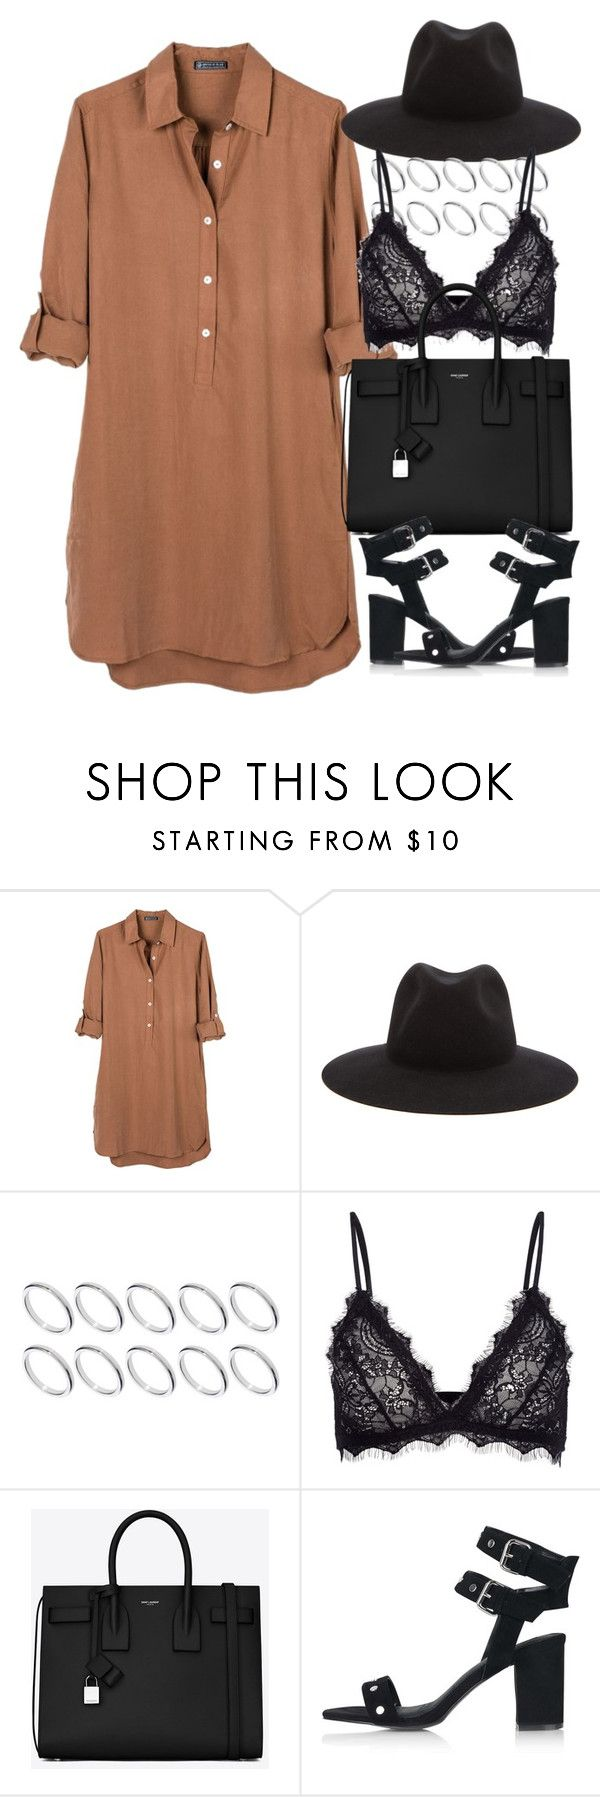 """Untitled #4203"" by maddie1128 ❤ liked on Polyvore featuring United by Blue, rag & bone, ASOS, Anine Bing, Yves Saint Laurent and Topshop"